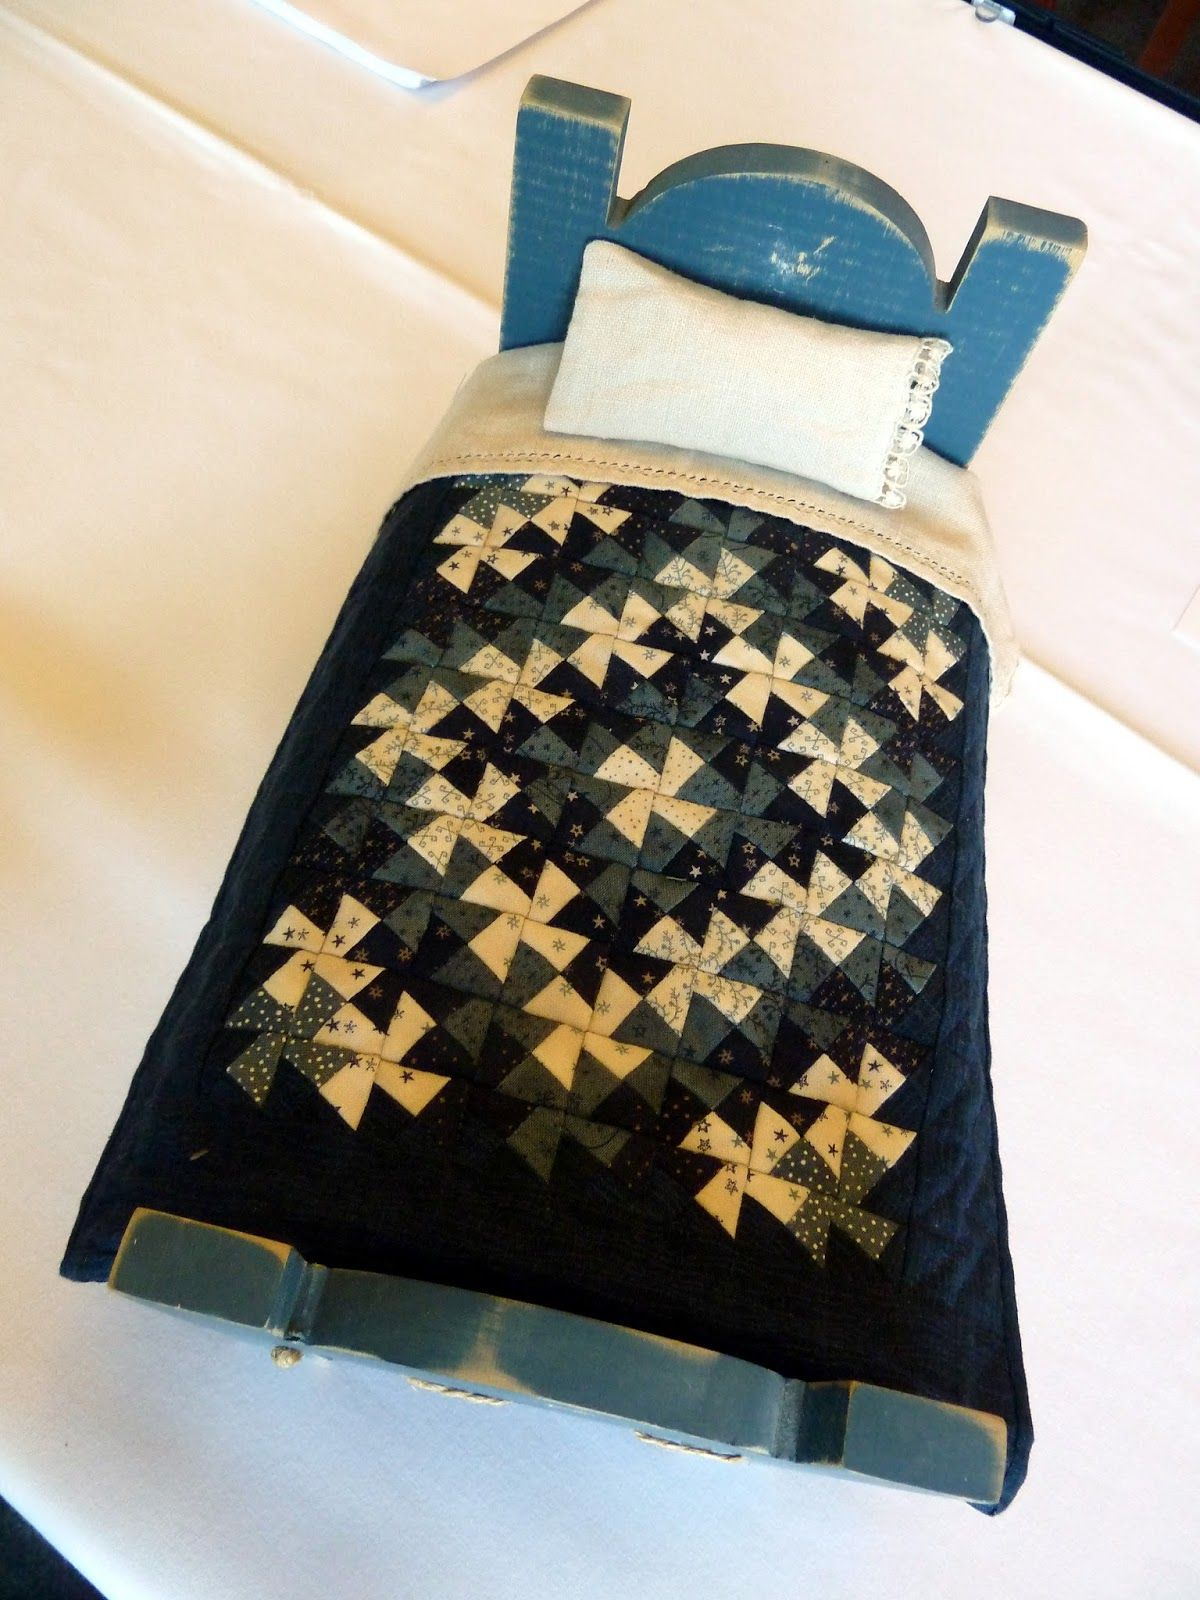 Sue Garman: Seminars and All Kinds of Quilts | Doll and Crib ... : kinds of quilting - Adamdwight.com